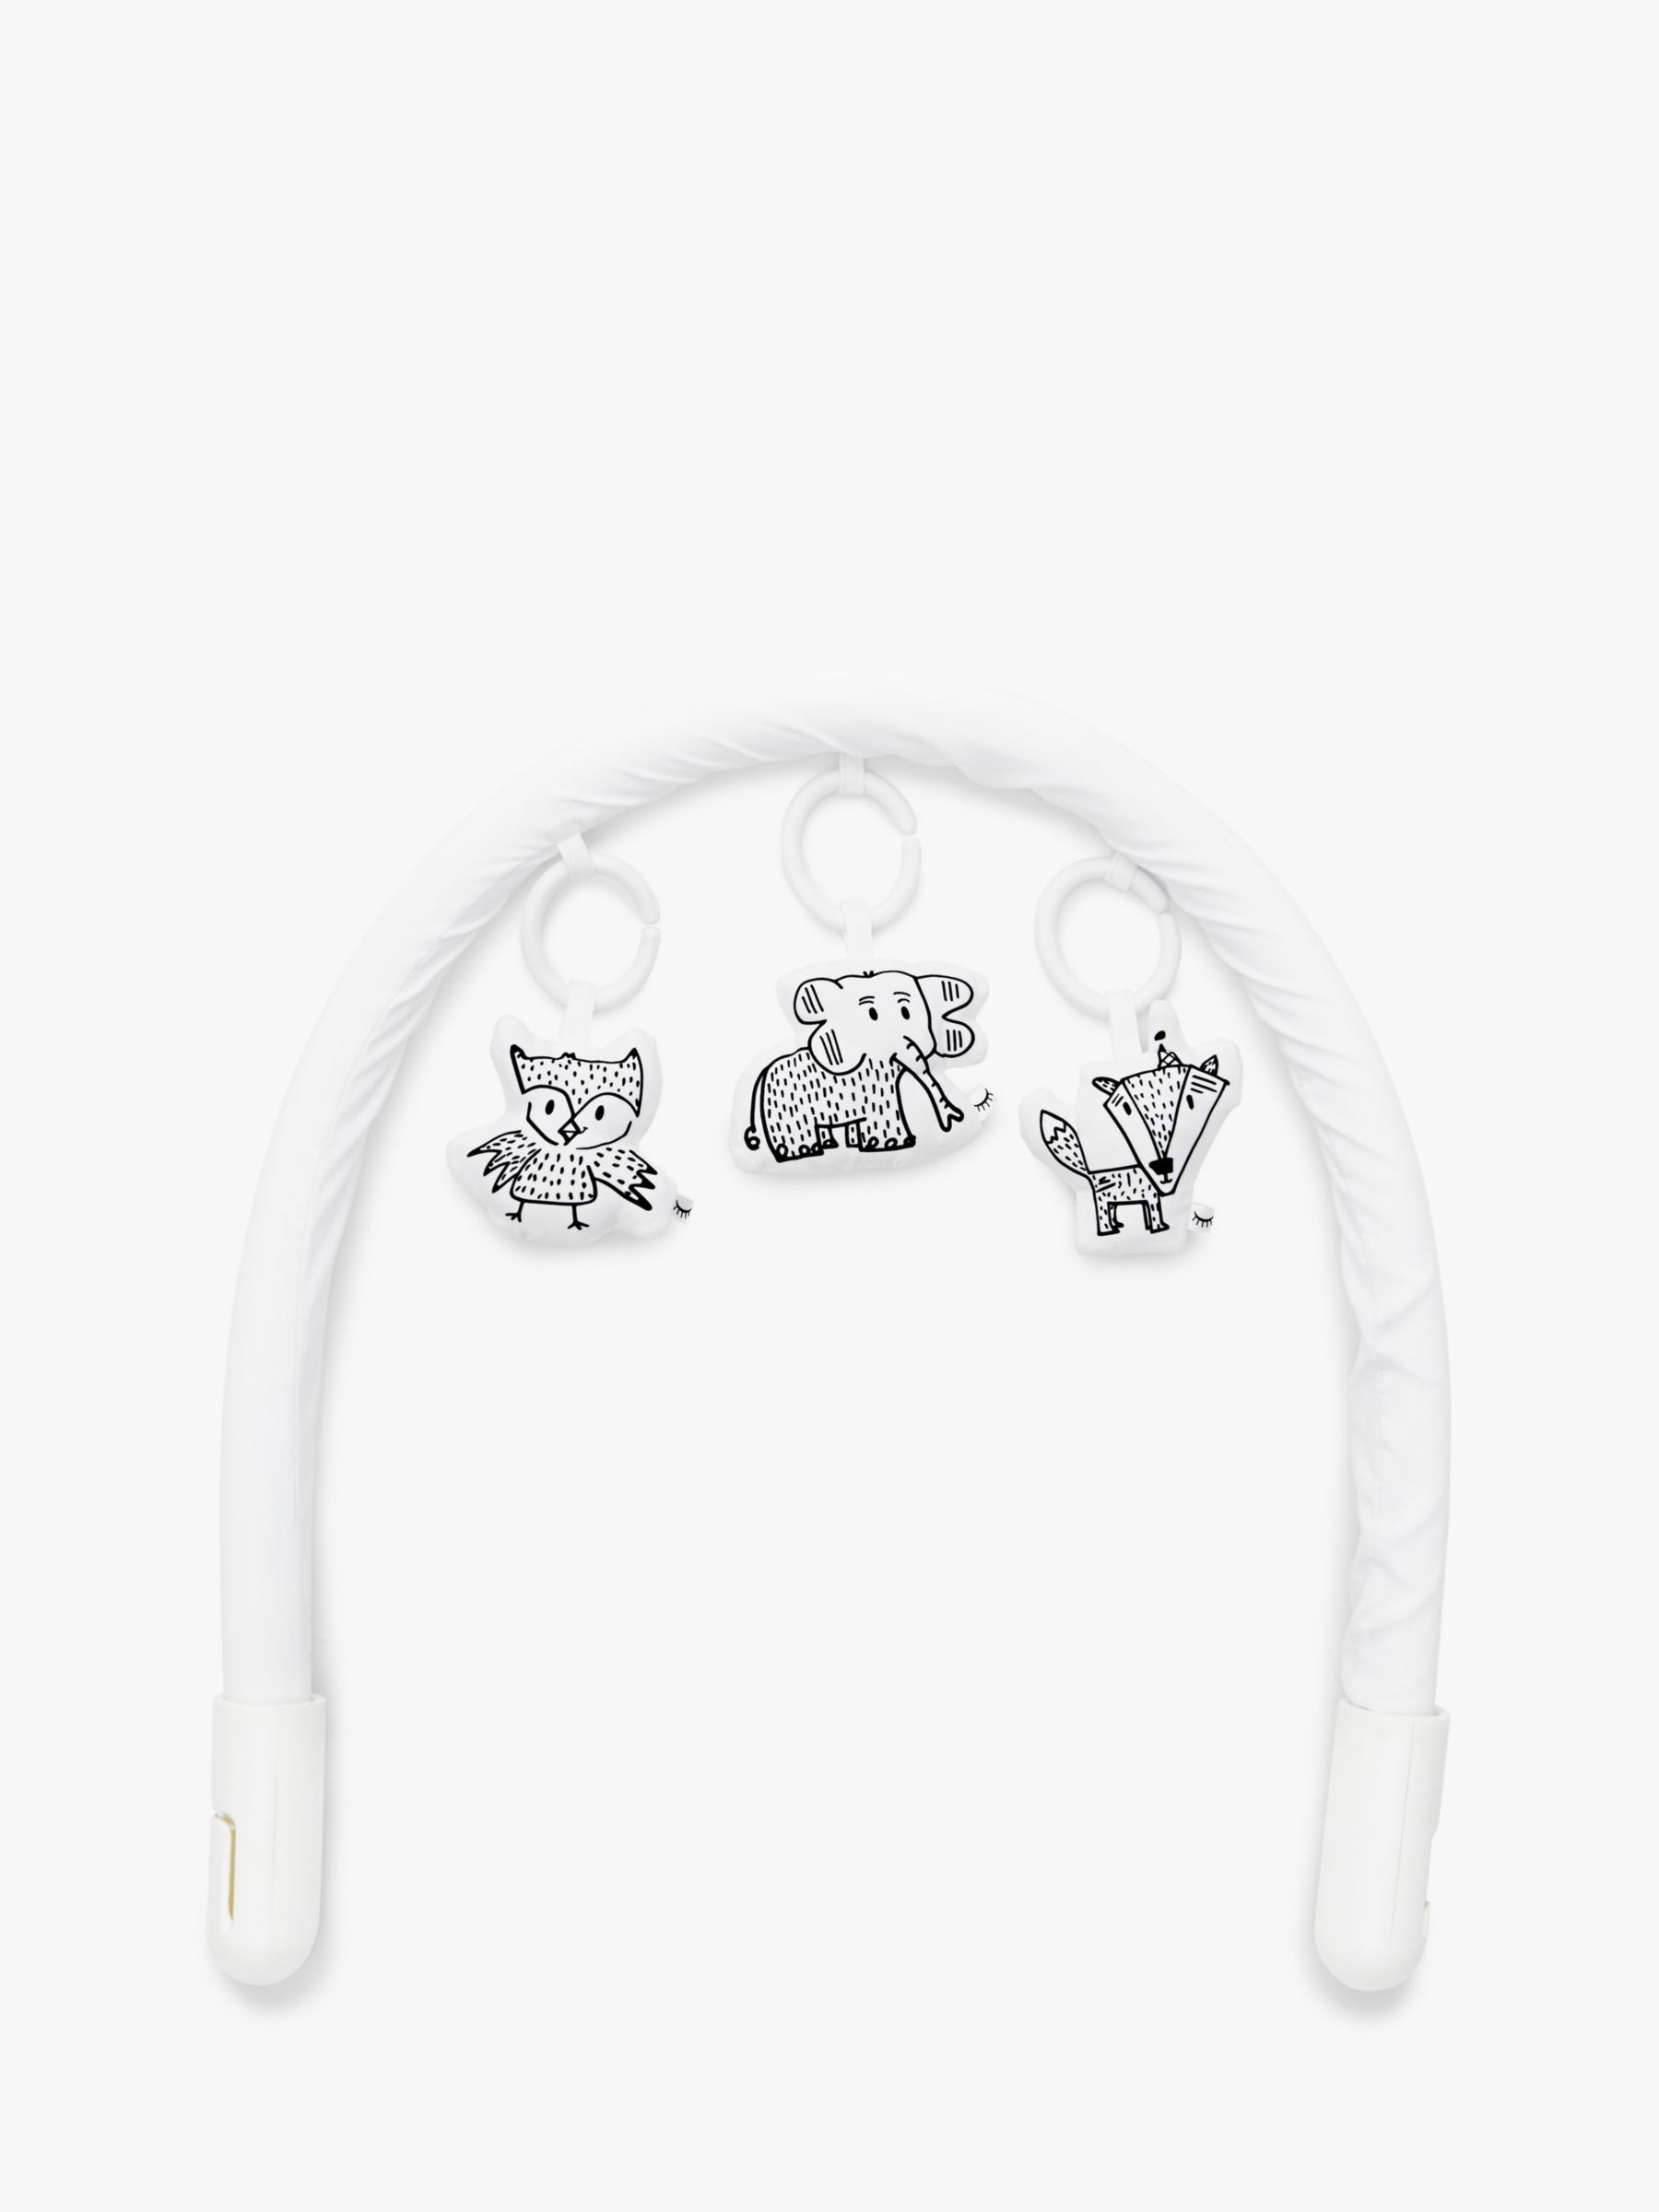 DockATot Baby Mobile Toy Arch and Hanging Cheeky Chums Toy Set